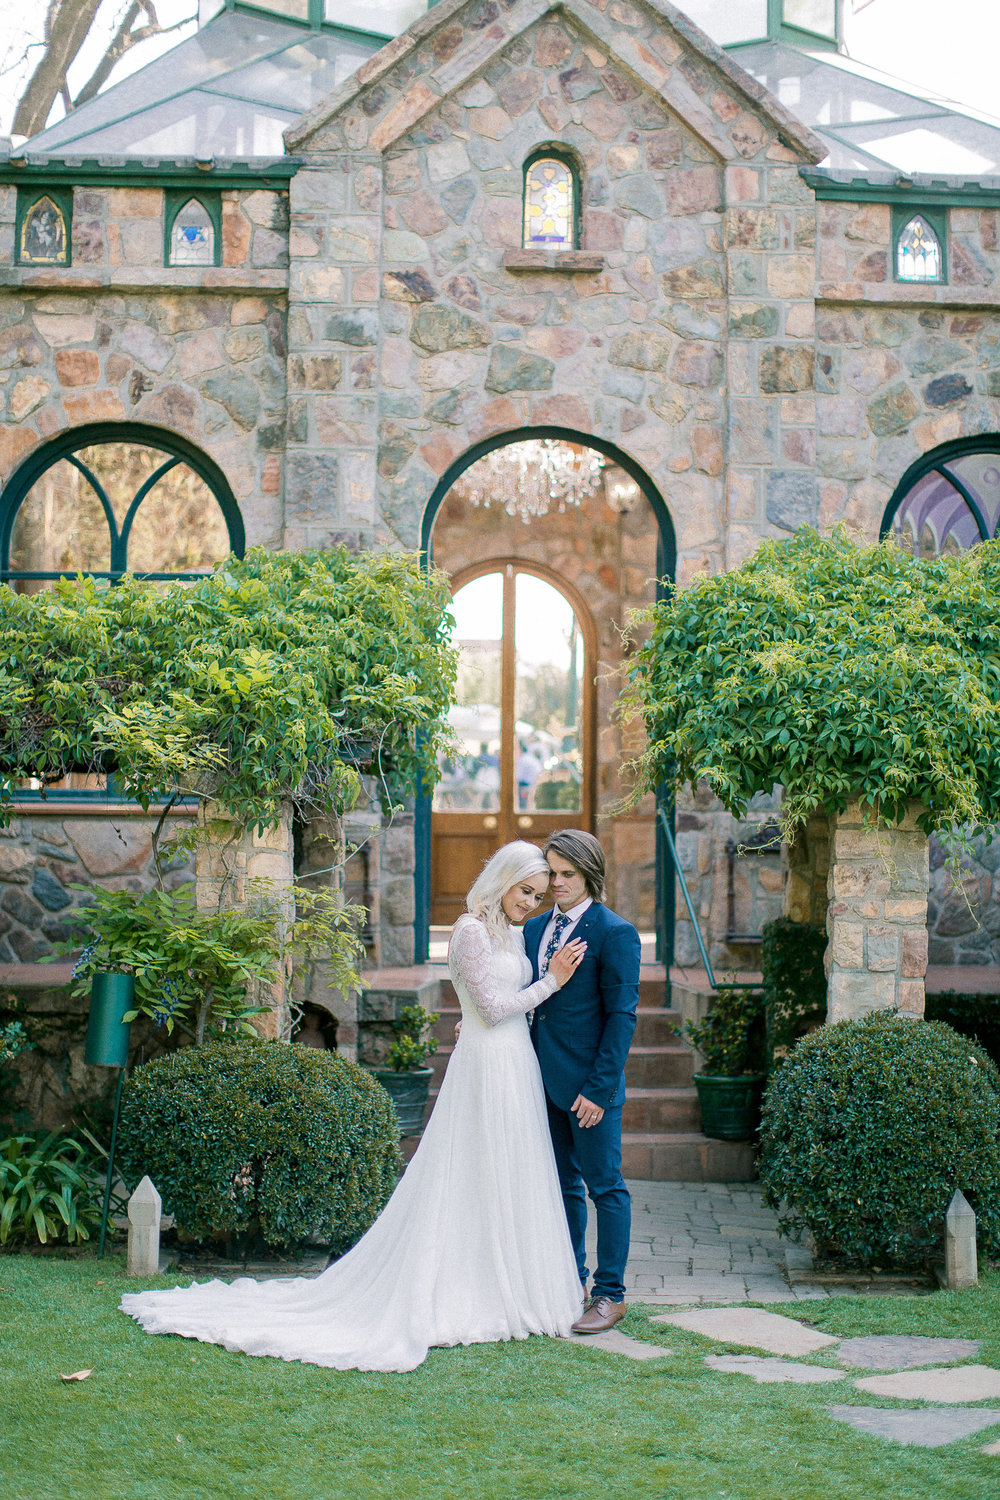 shepstone gardens wedding 2017001.jpg